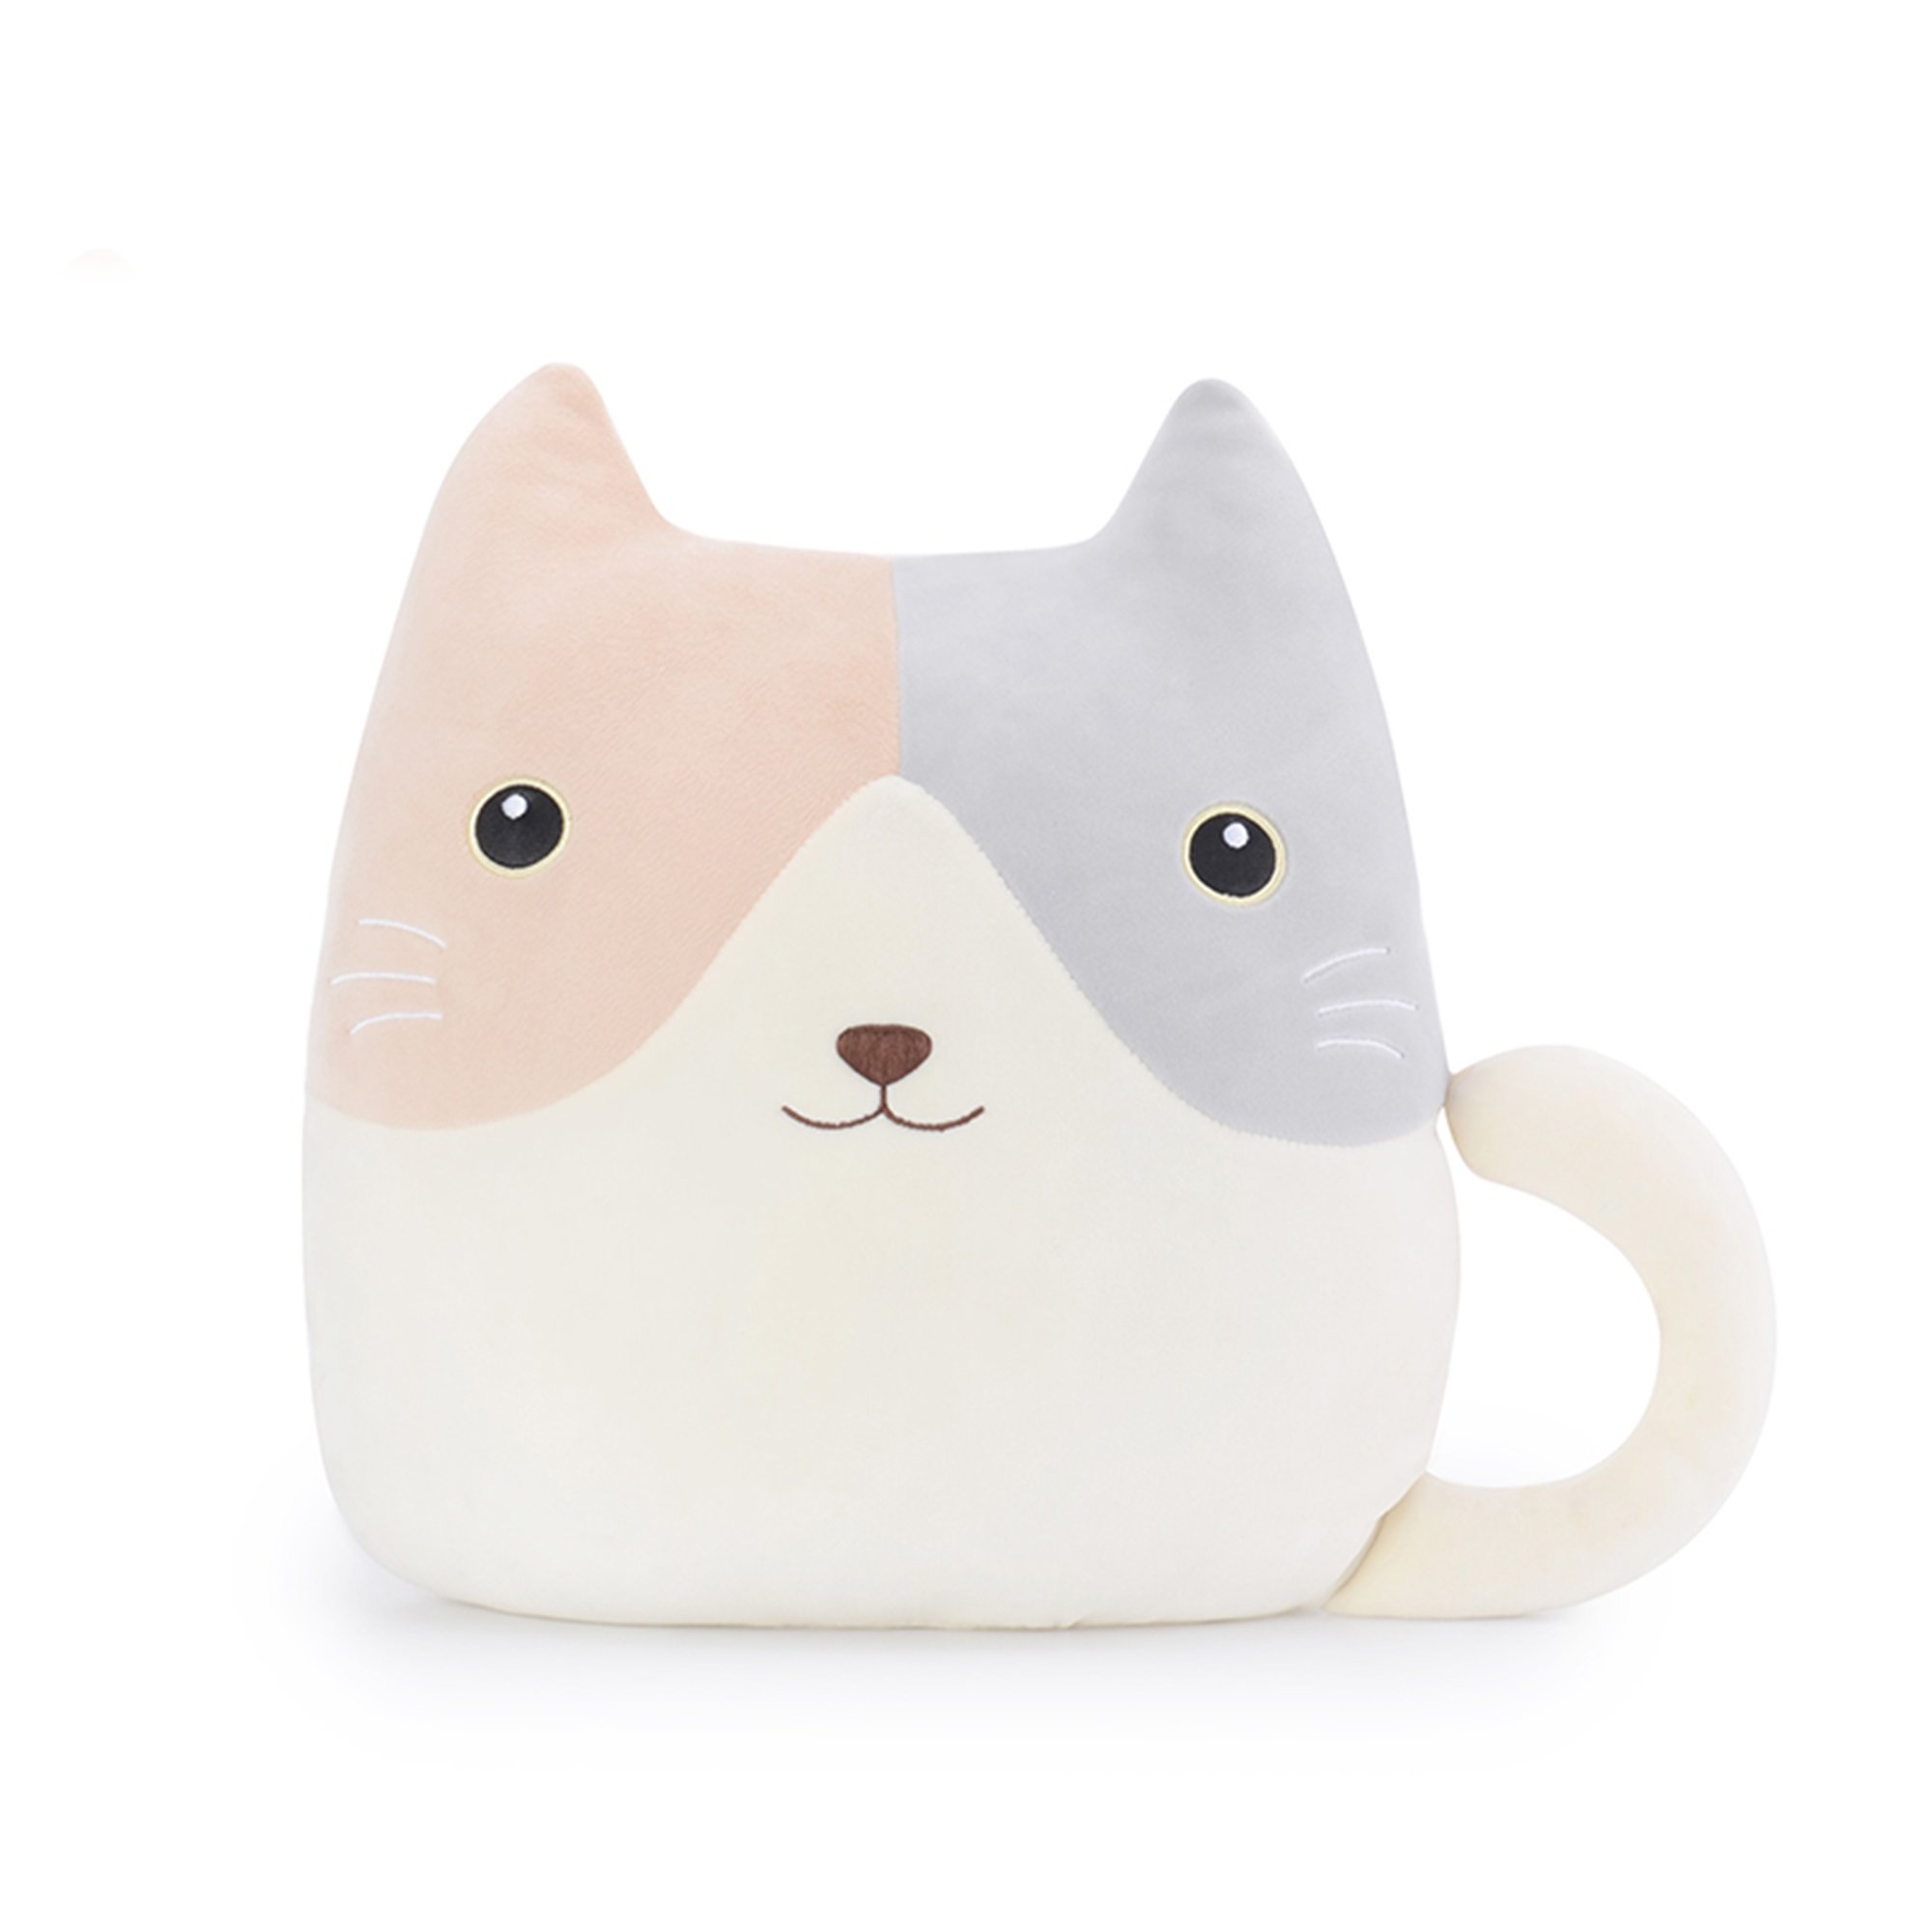 Me Too Super Soft Plush Cat Pillows Stuffed Hugging Toys Fashion for Kids Children 16''